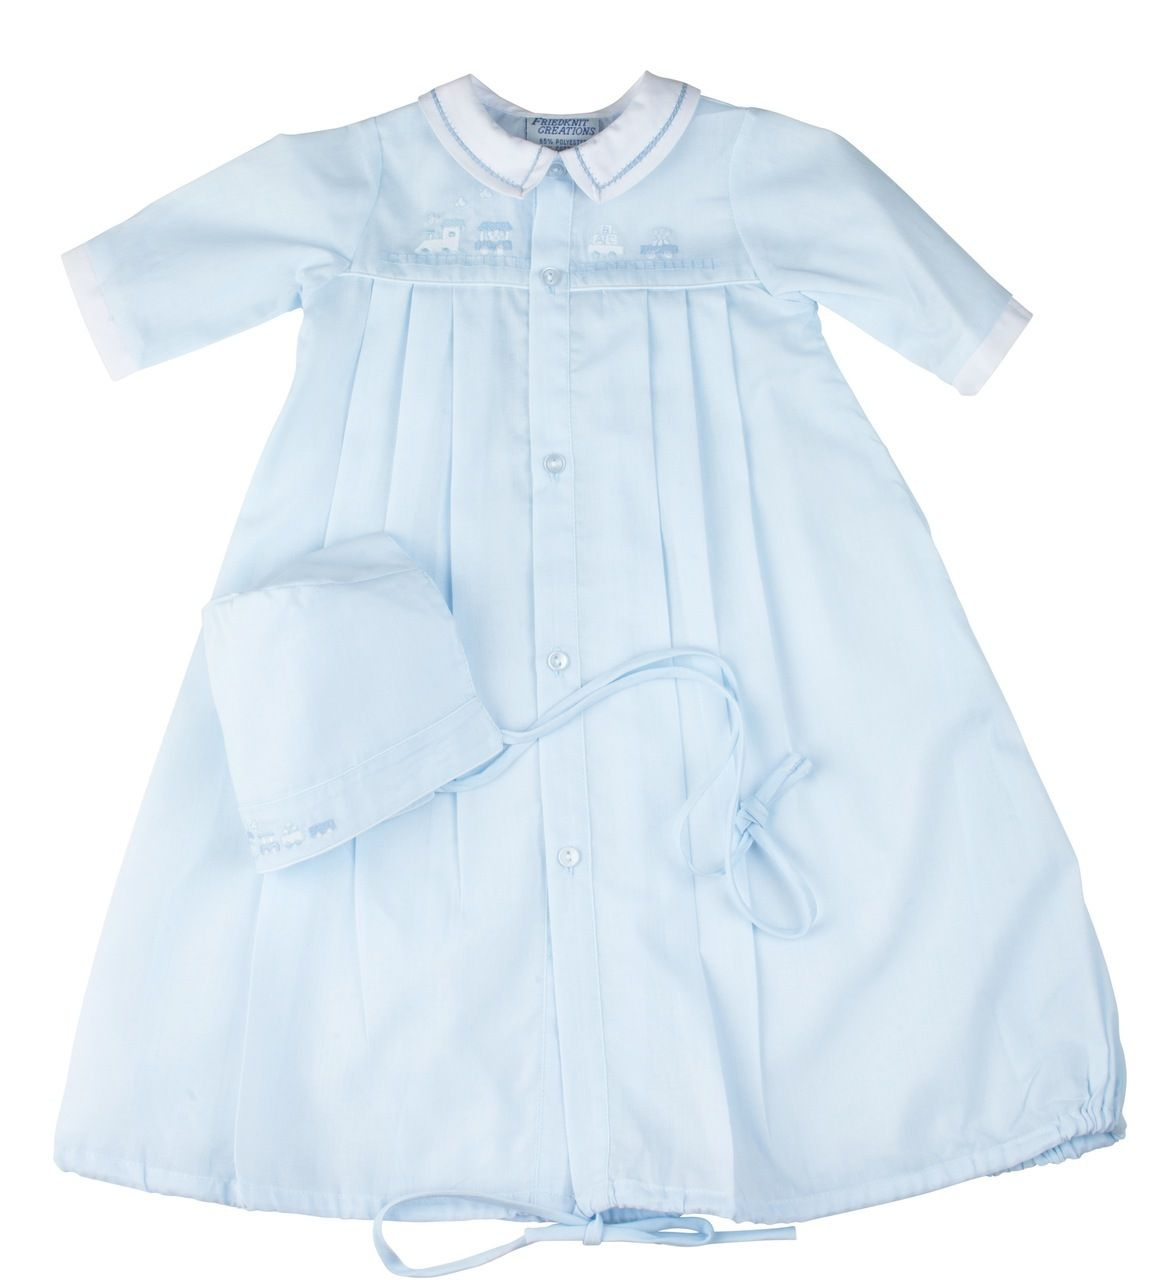 94ccb7e1397 Preemie Train Pleated Take Me Home Gown with Hat